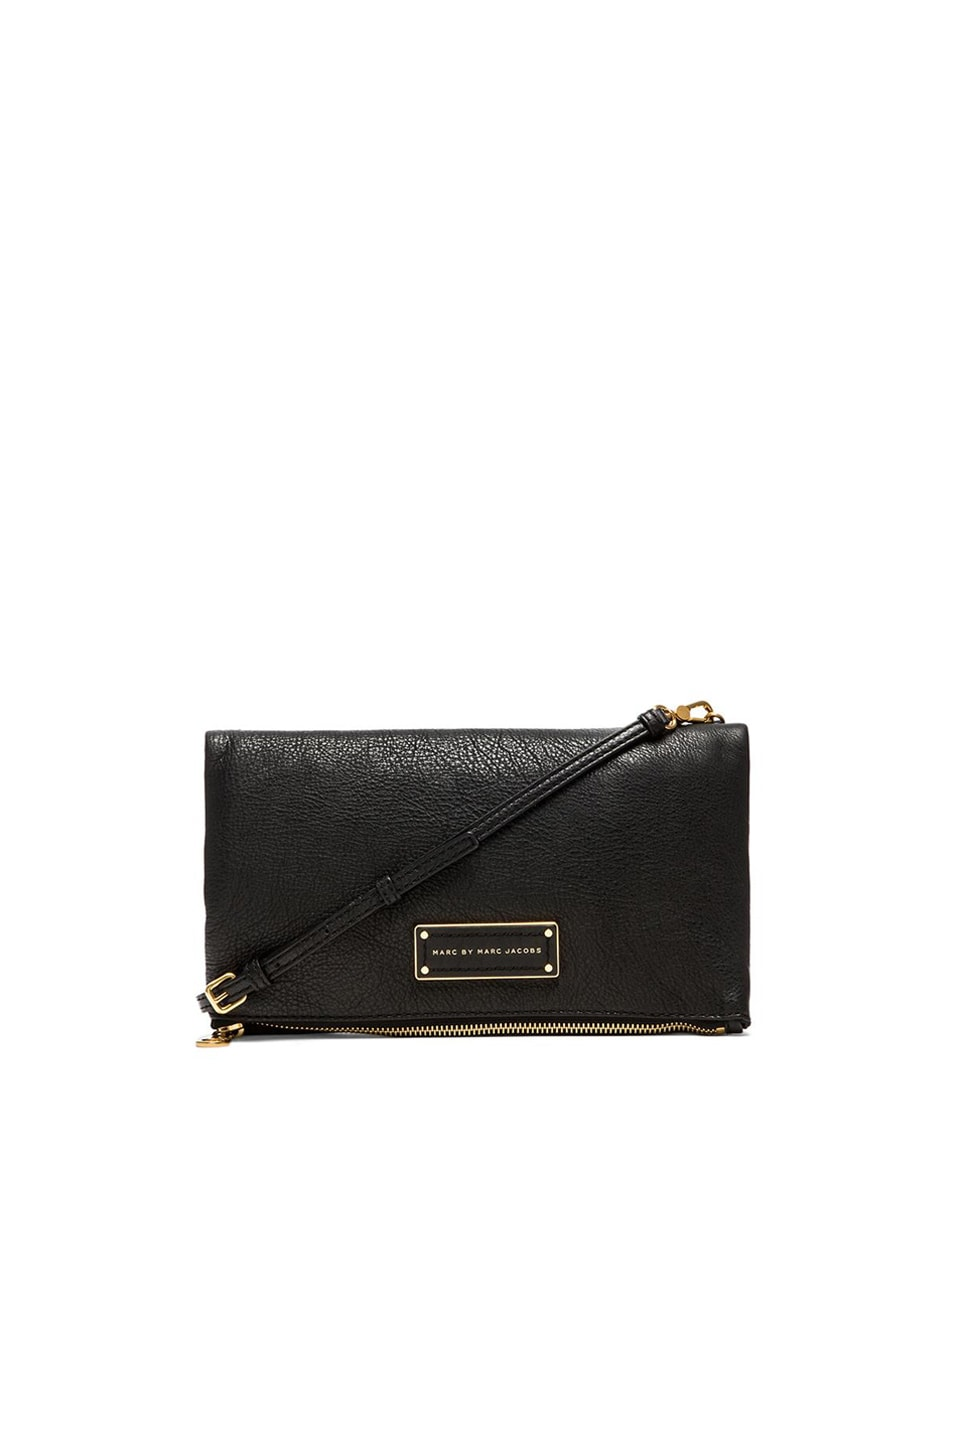 Marc by Marc Jacobs Too Hot to Party Chalky Liz Fold Over Clutch in Black